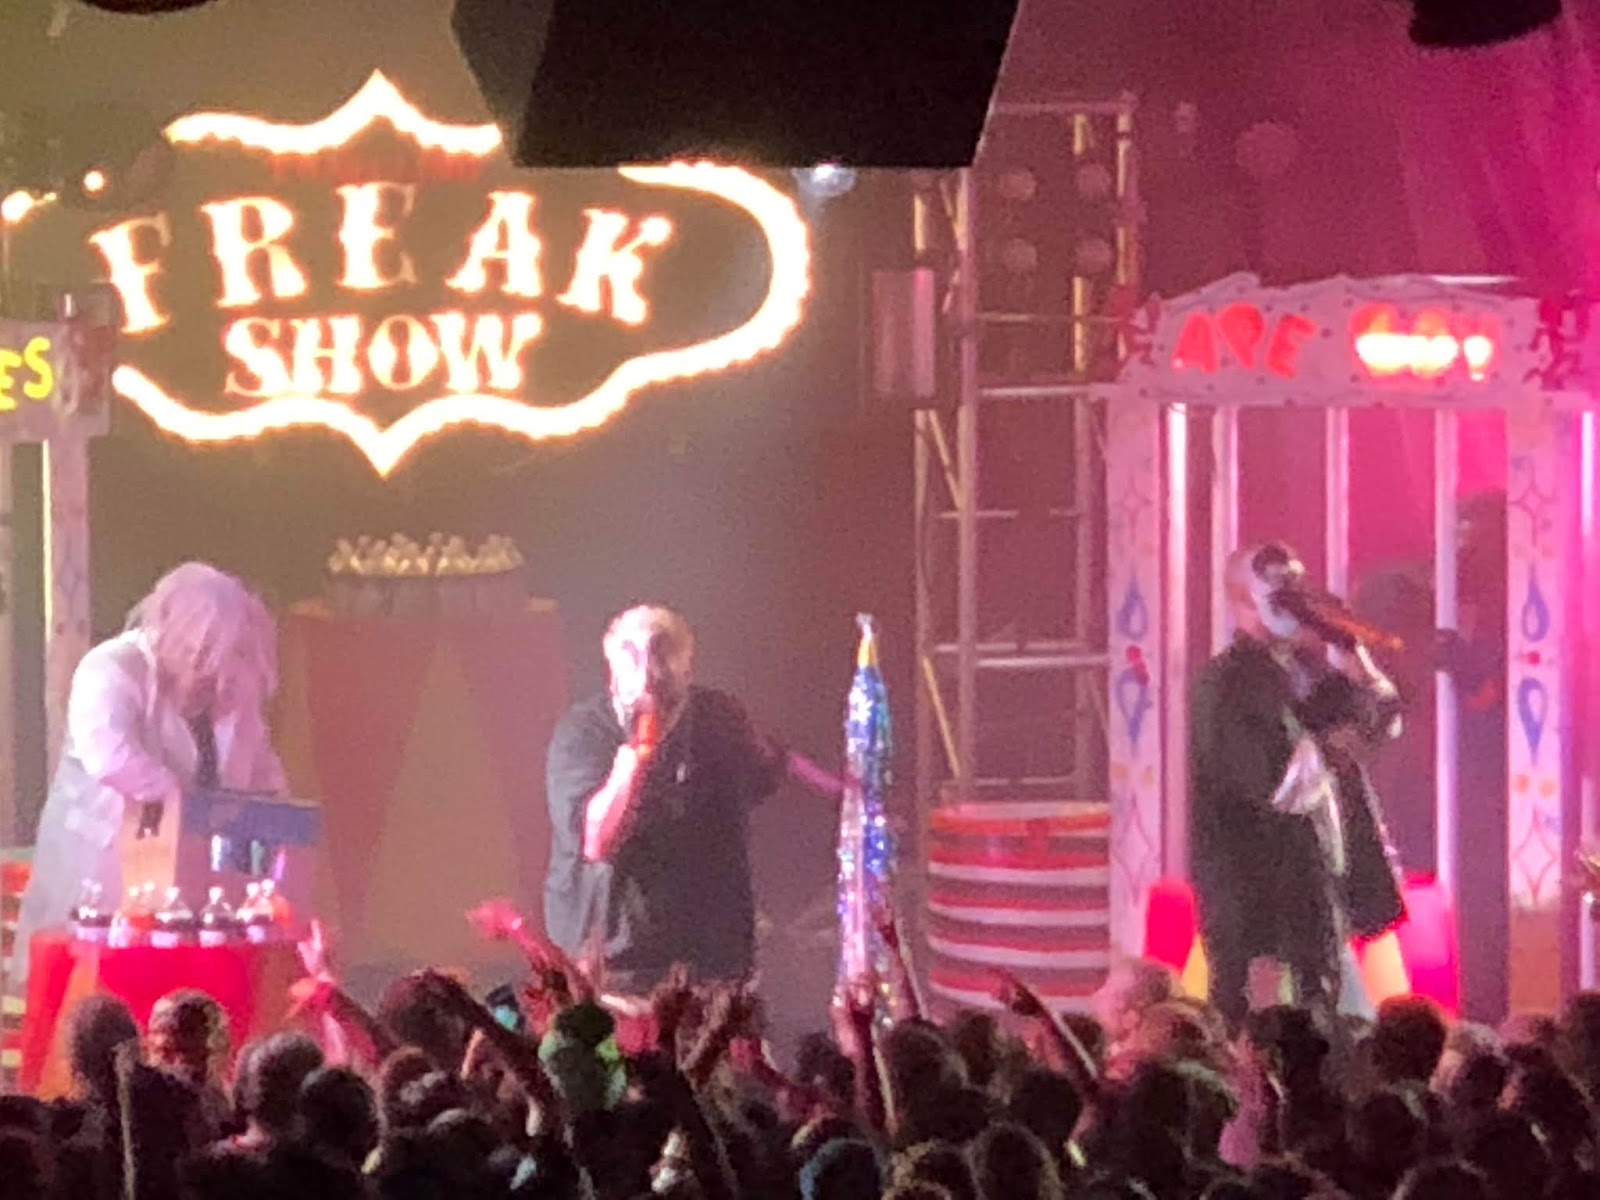 Insane Clown Posse At The Stampede In Aurora Co On 10 28 18 Old